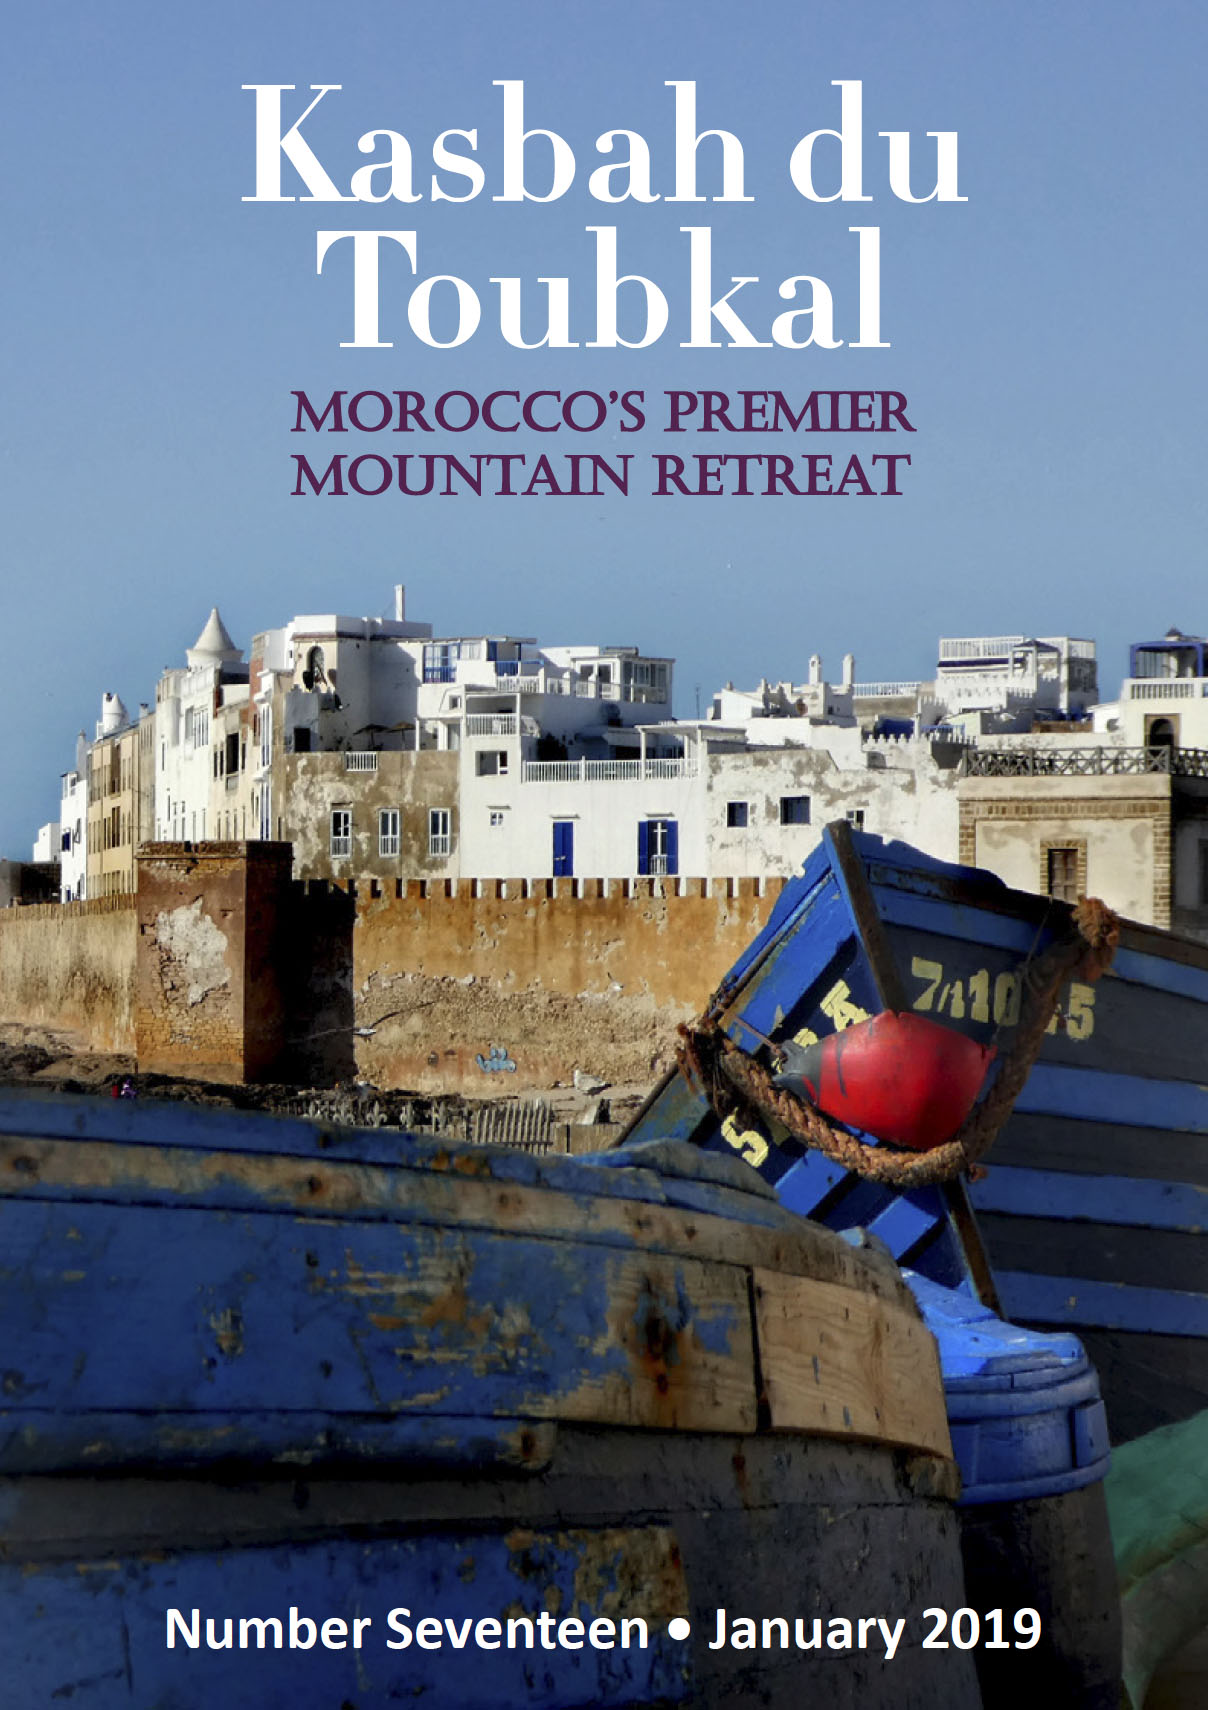 The cover of the seventeenth edition of the Kasbah du Toubkal magazine